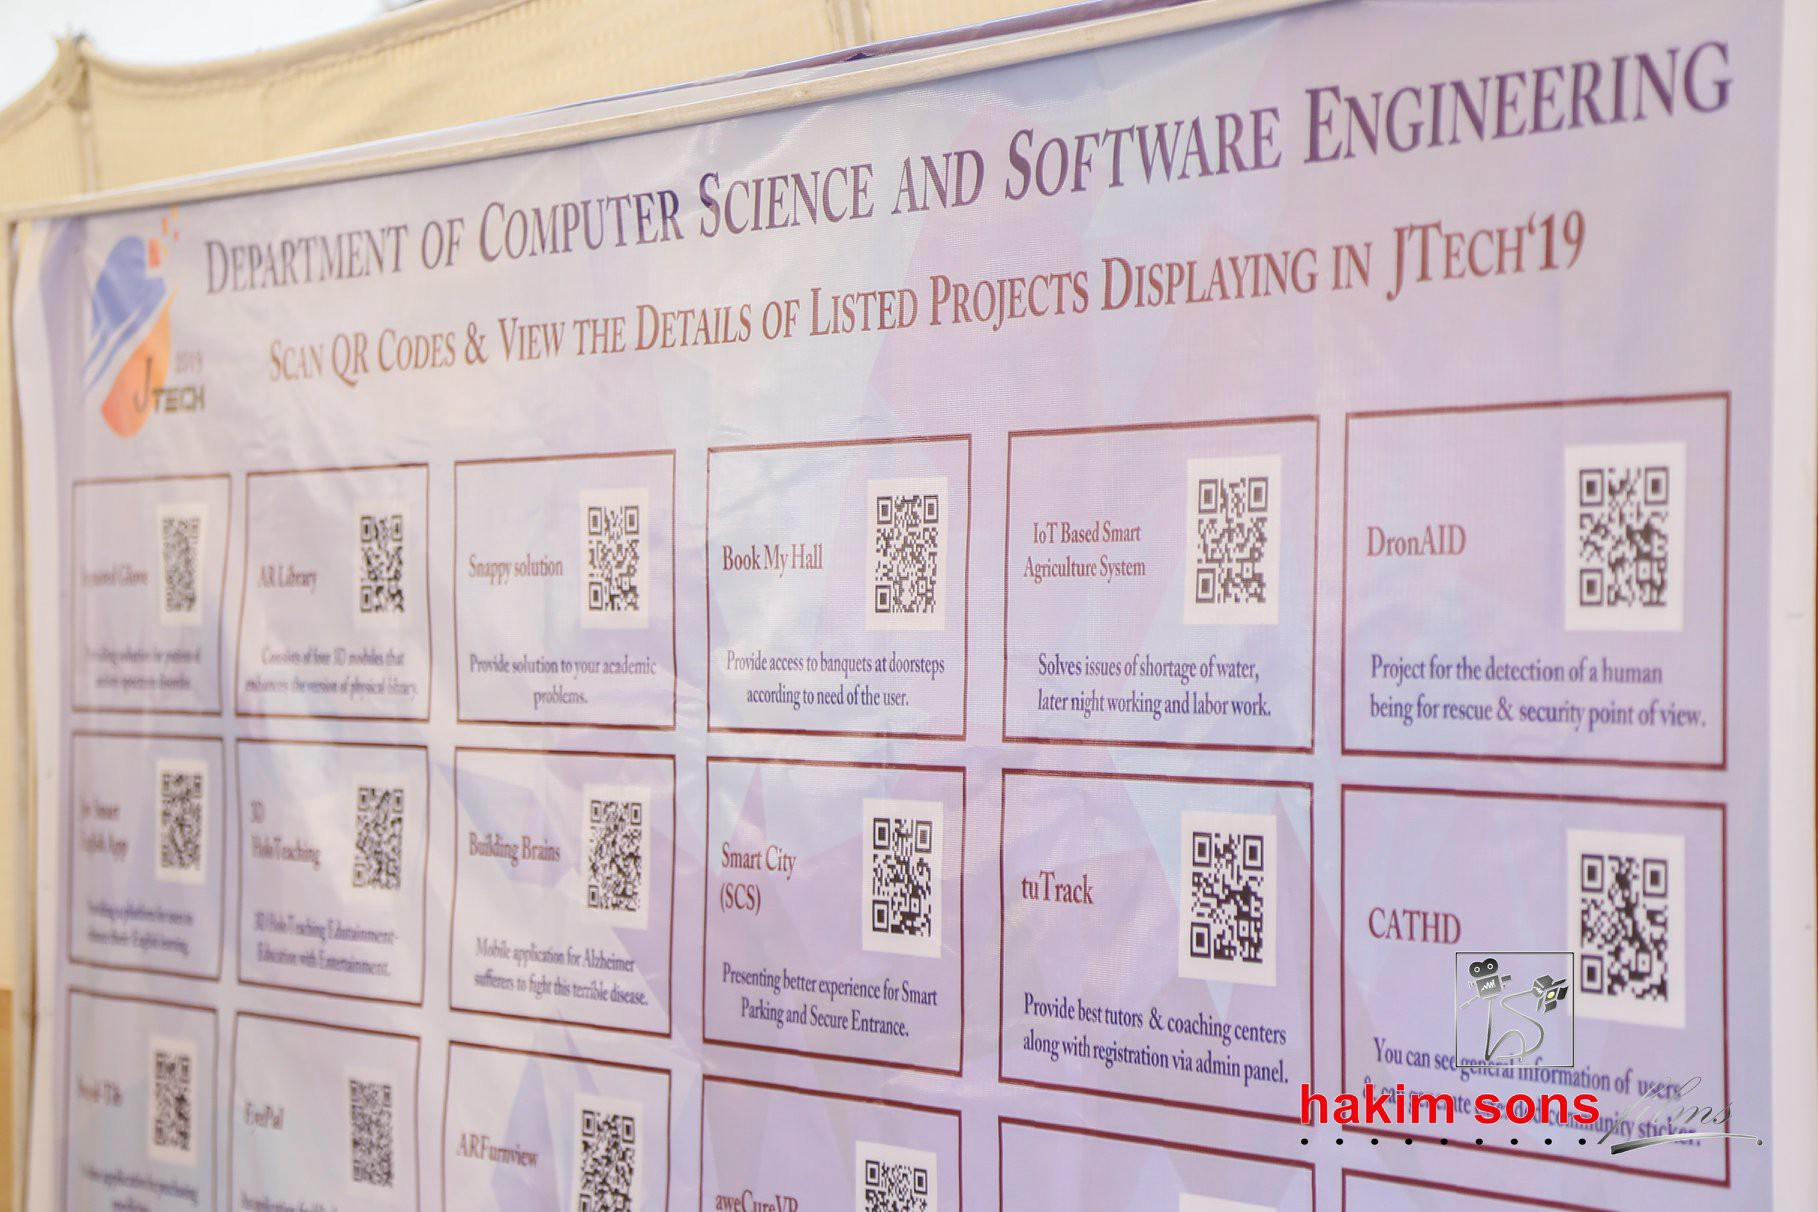 A greeting wall for JTech'19 and QR codes for details of all projects